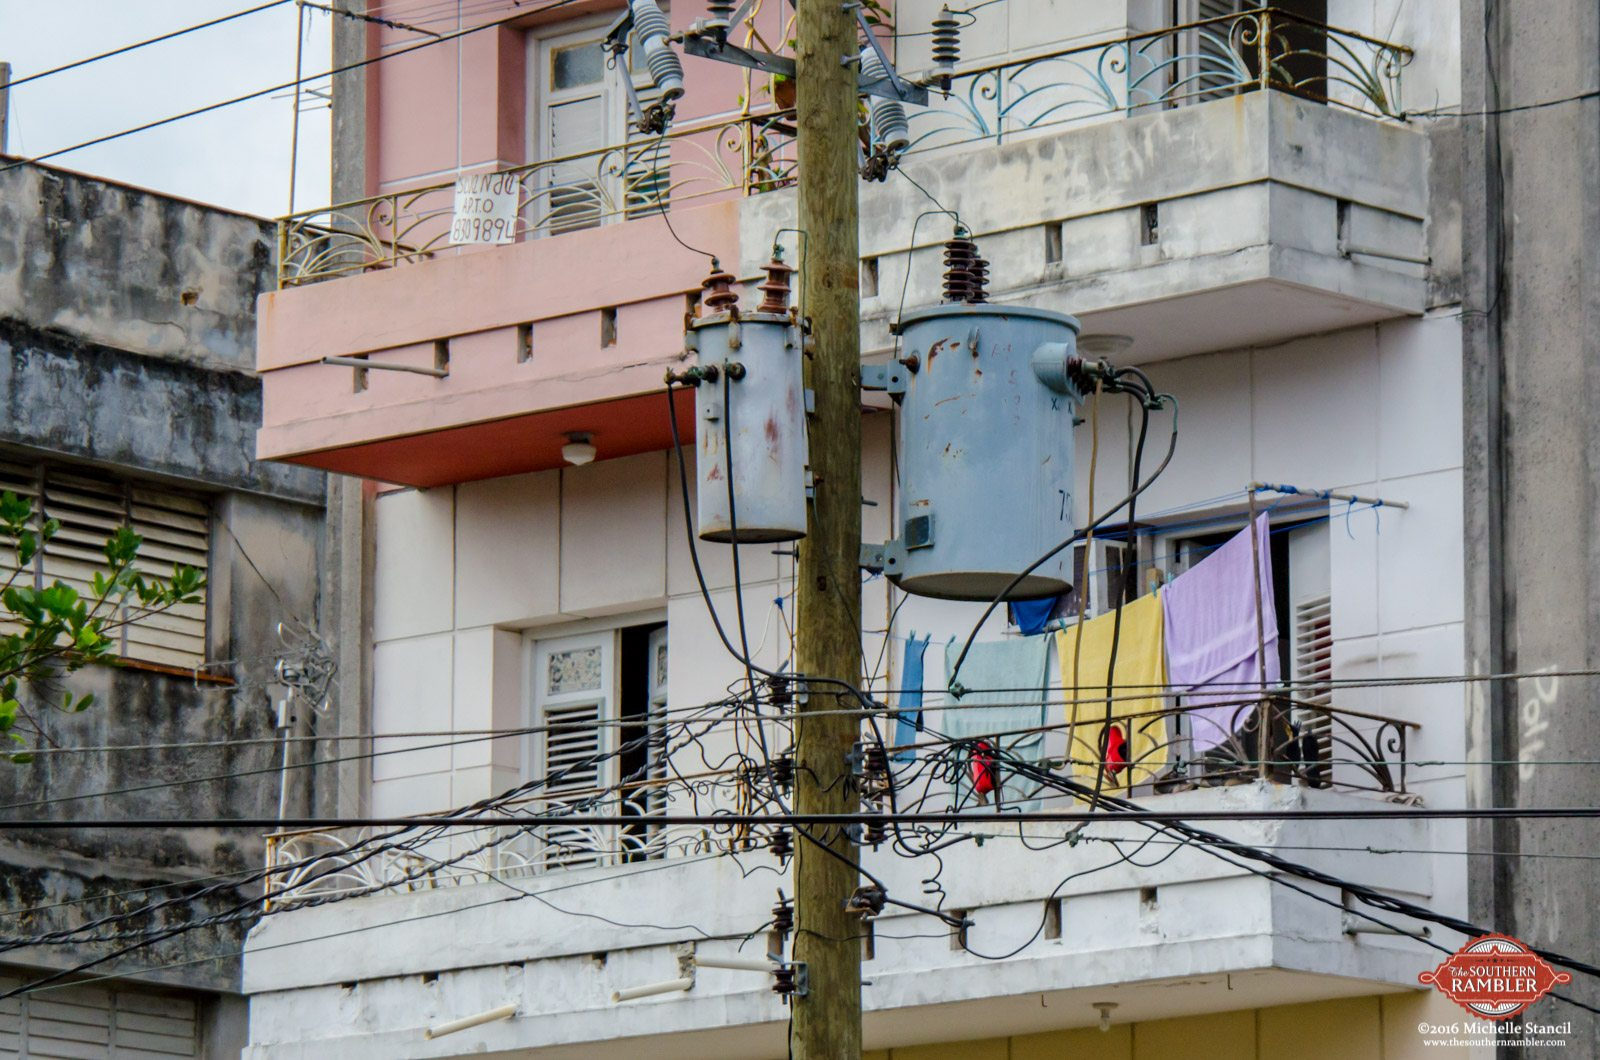 Cuba is powered by an antiquated power system. Some transfomers and equipment are original. (Michelle Stancil)